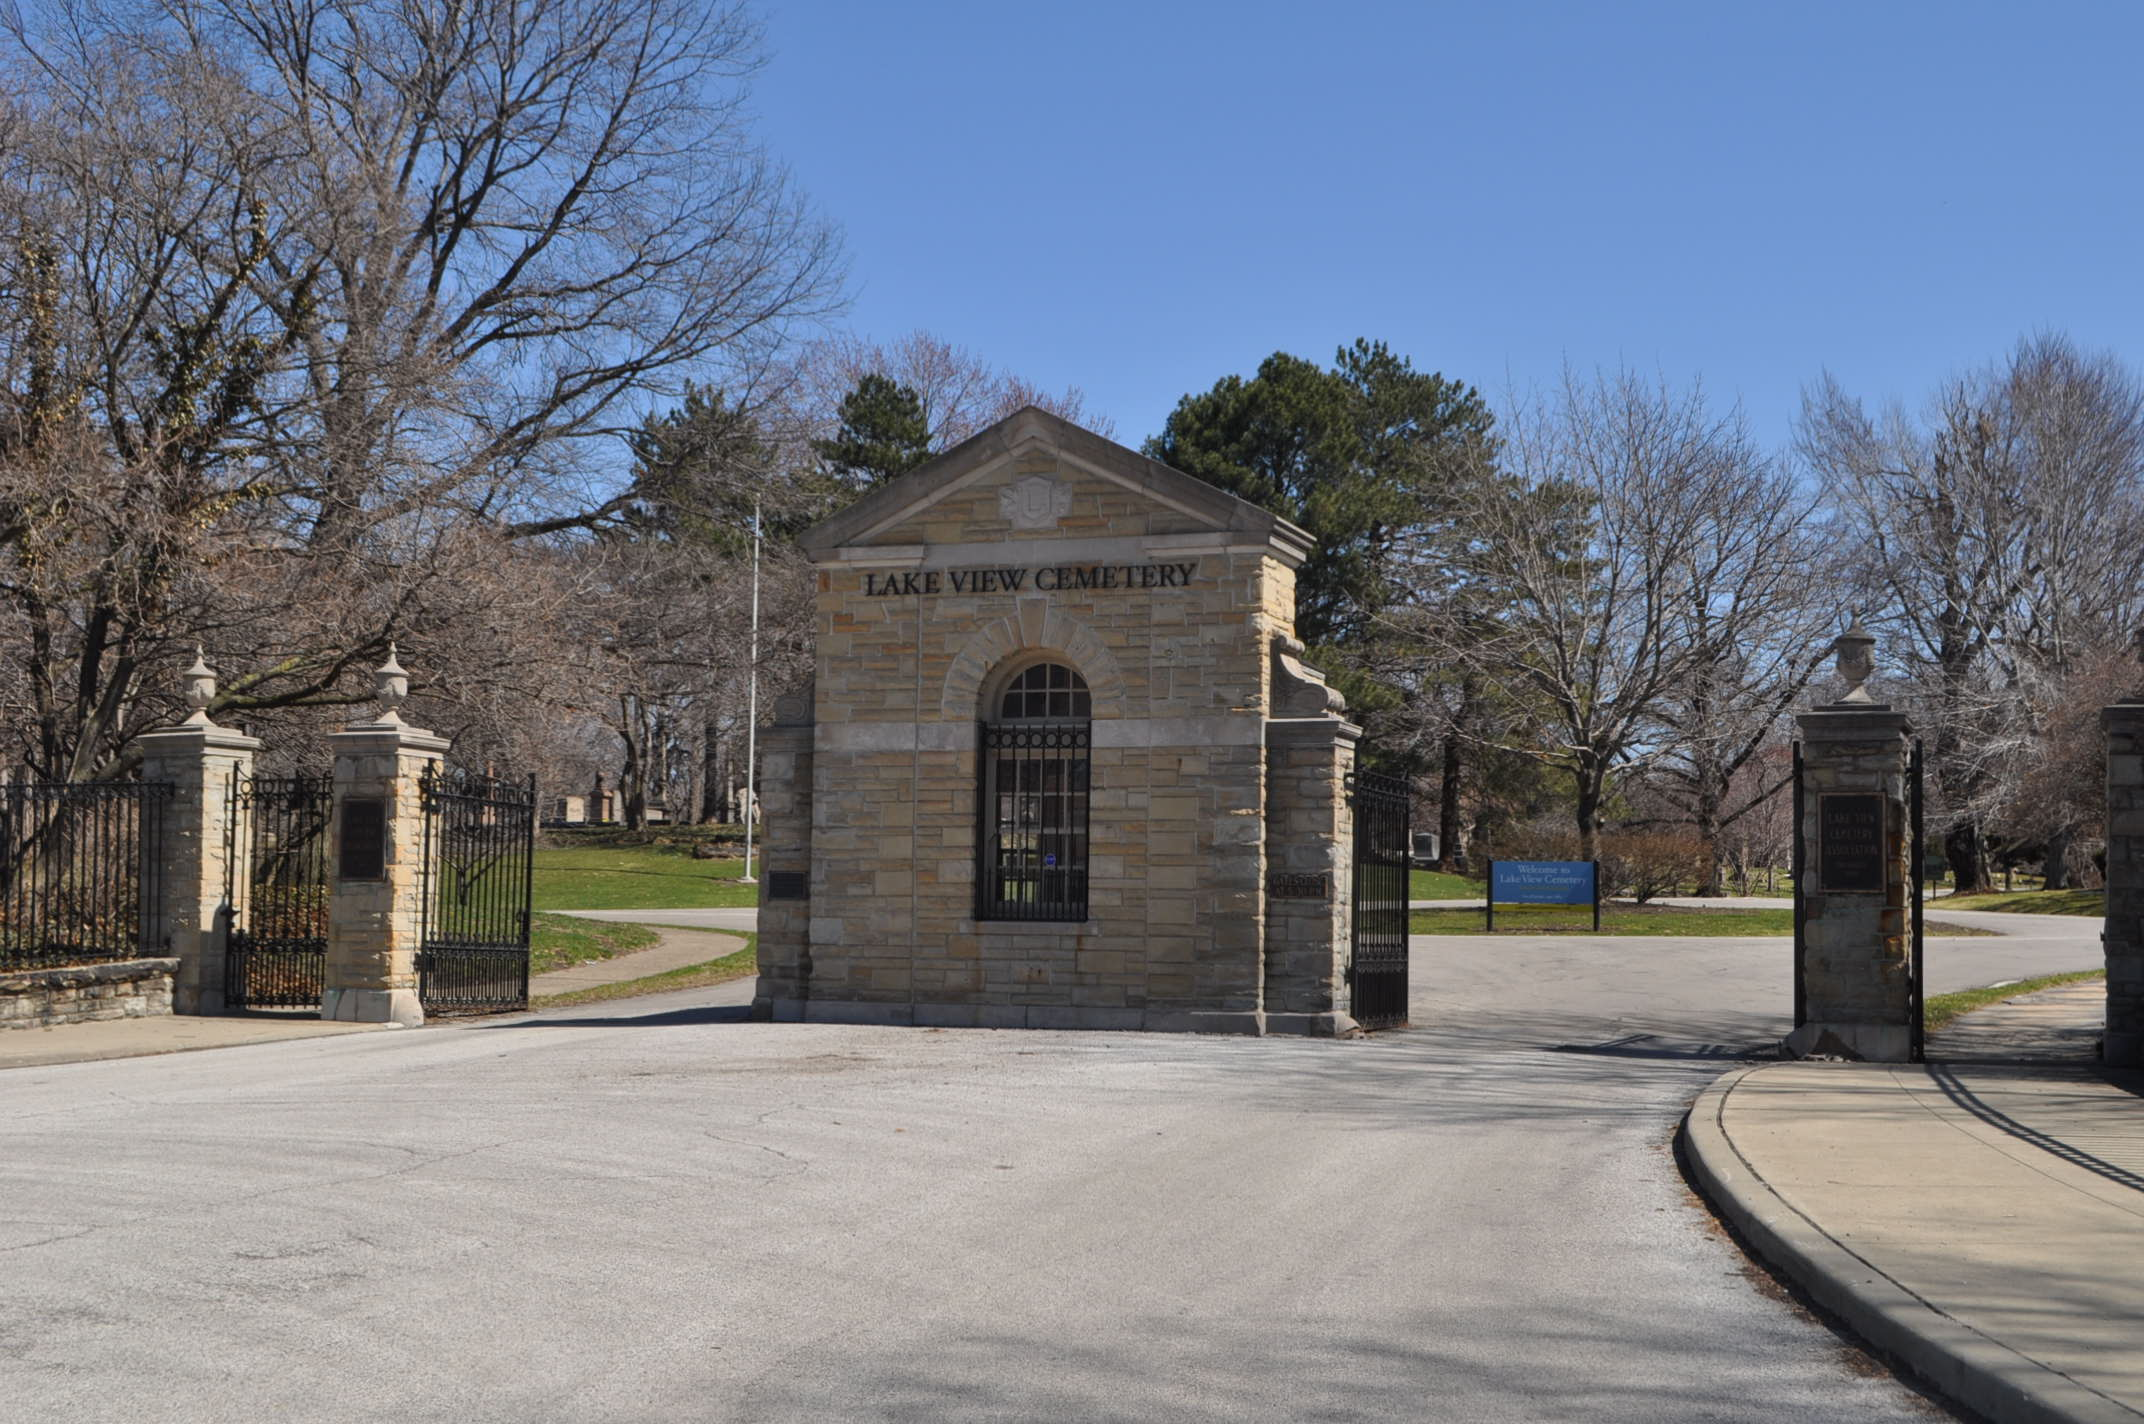 Lakeview Cemetery, founded in 1869 by wealthy Clevelanders including Jeptha Wade, was modeled after Boston's Mount Auburn Cemetery as well as the historic cemeteries of France and England.